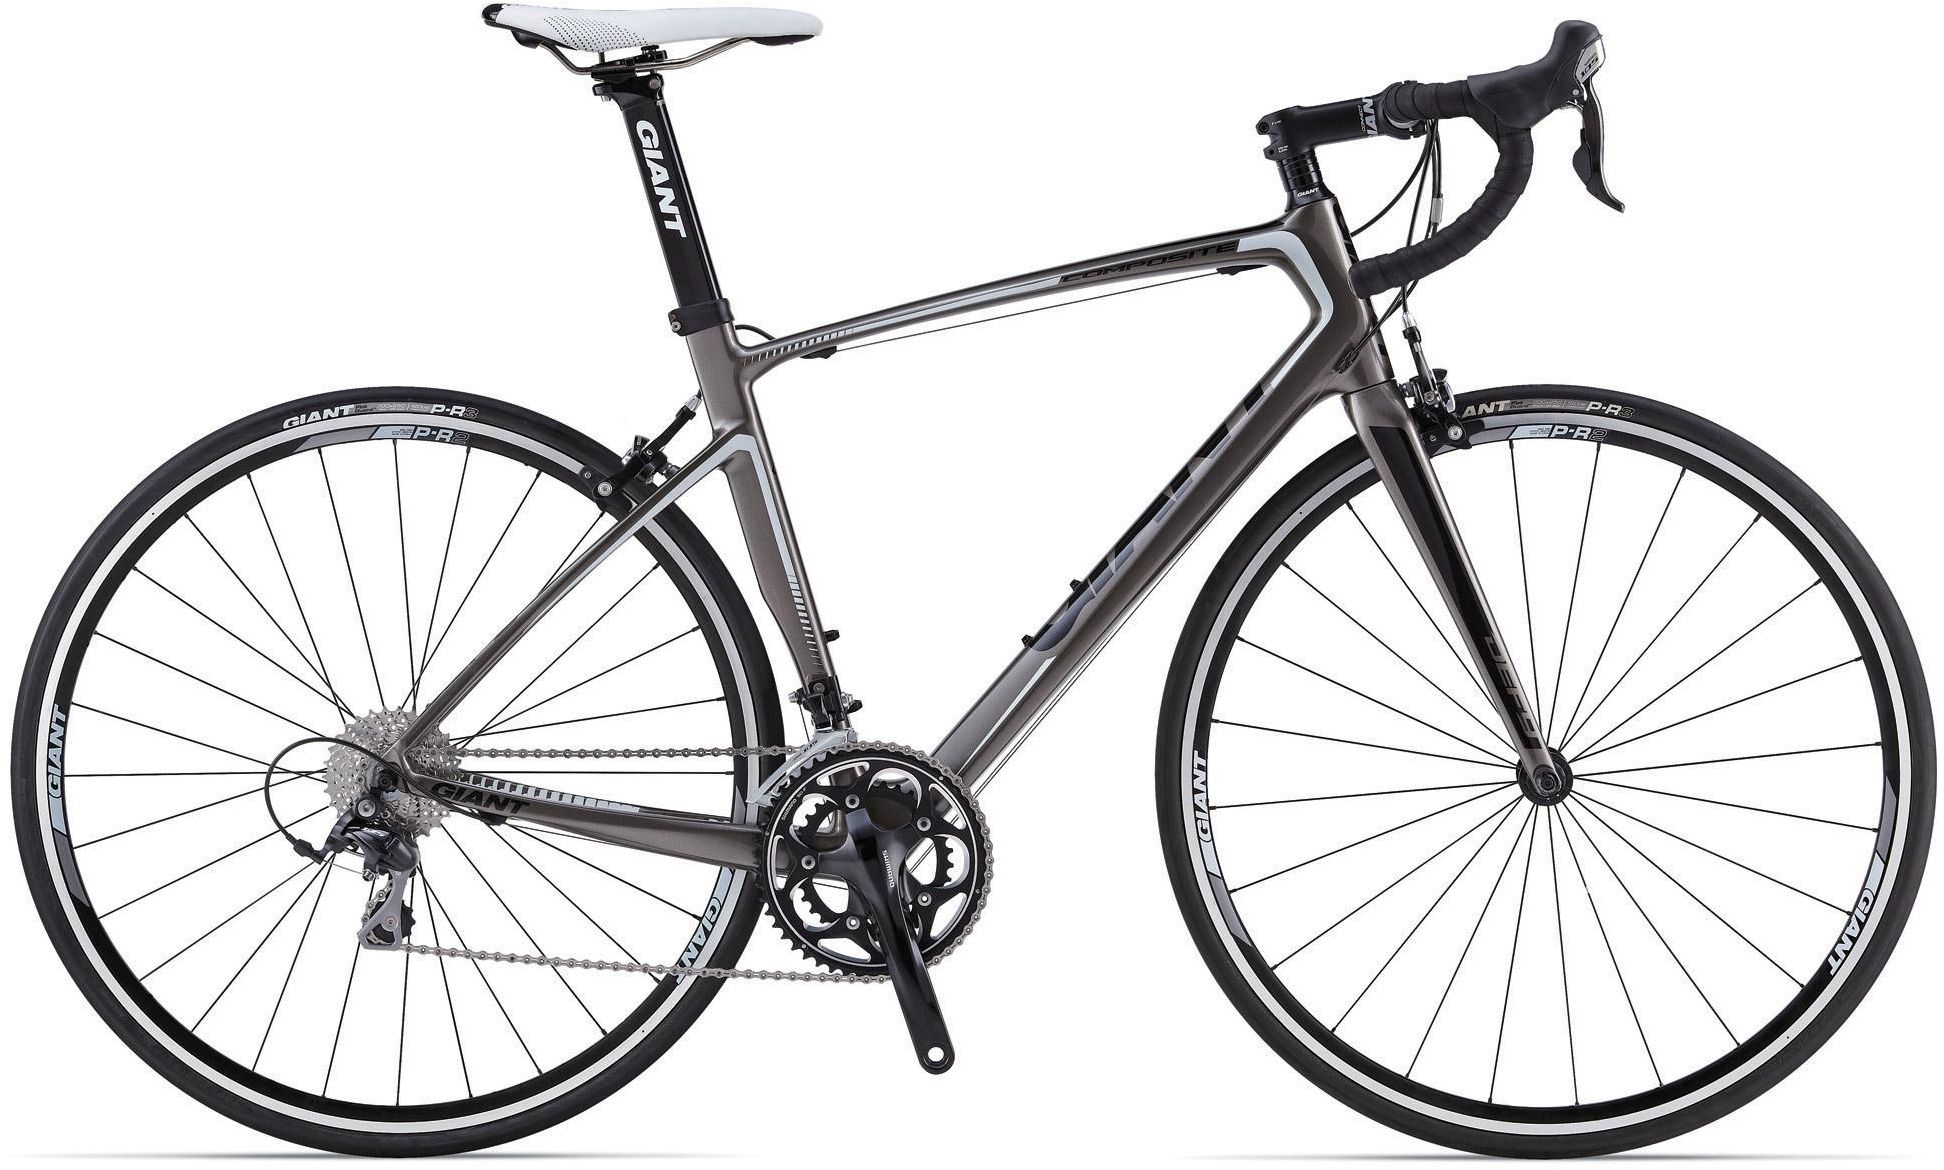 Giant Defy Composite 2 2014 review - The Bike List